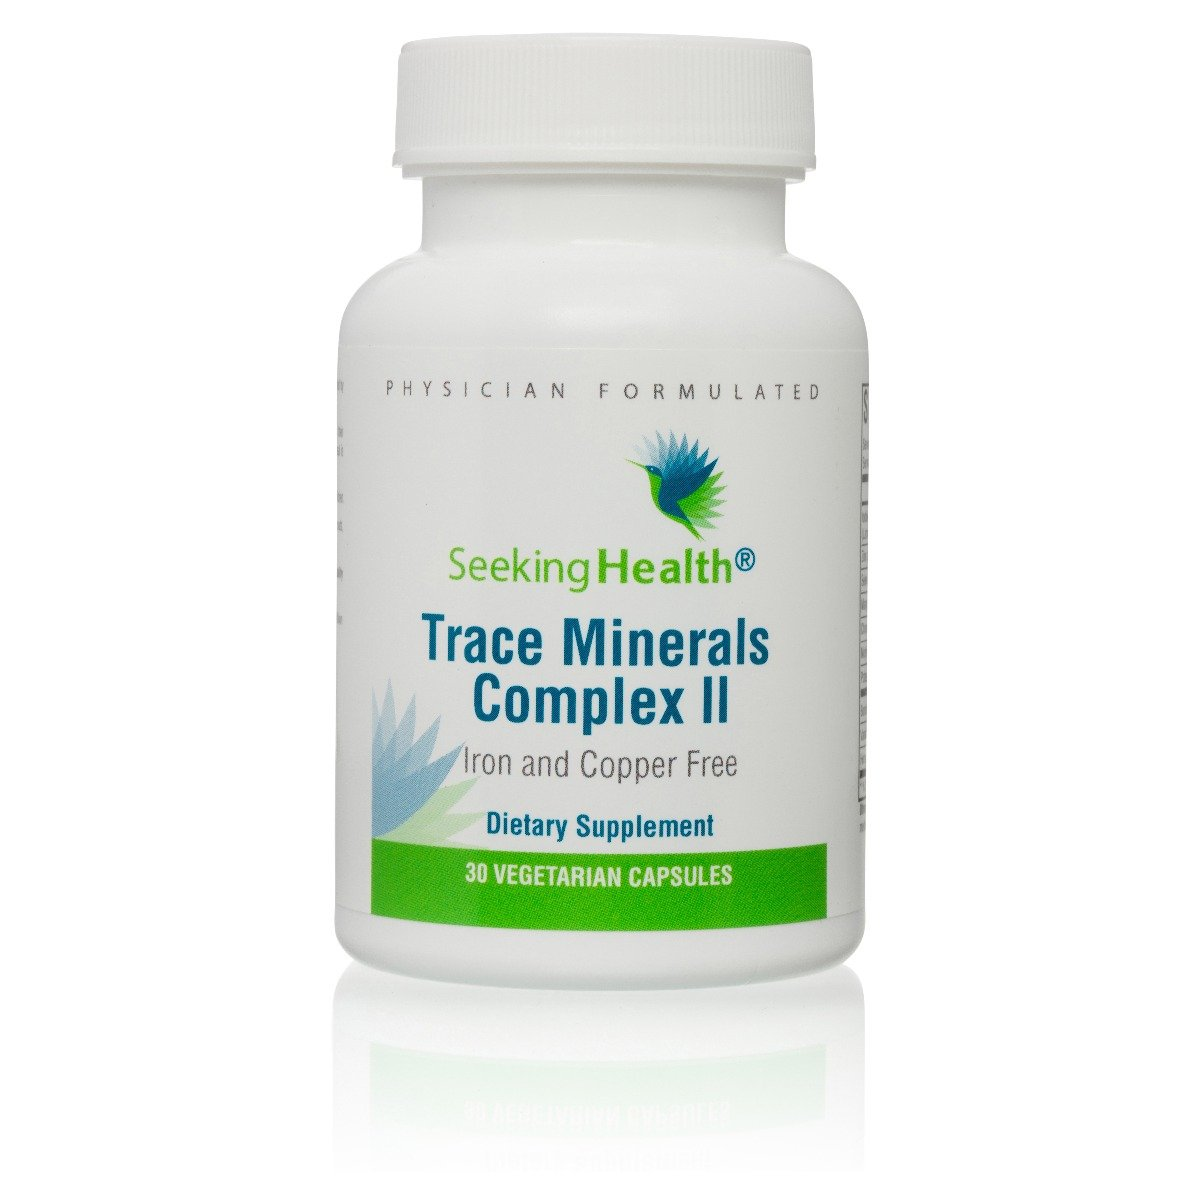 Trace Minerals Complex II Iron and Copper Free 30 Capsules